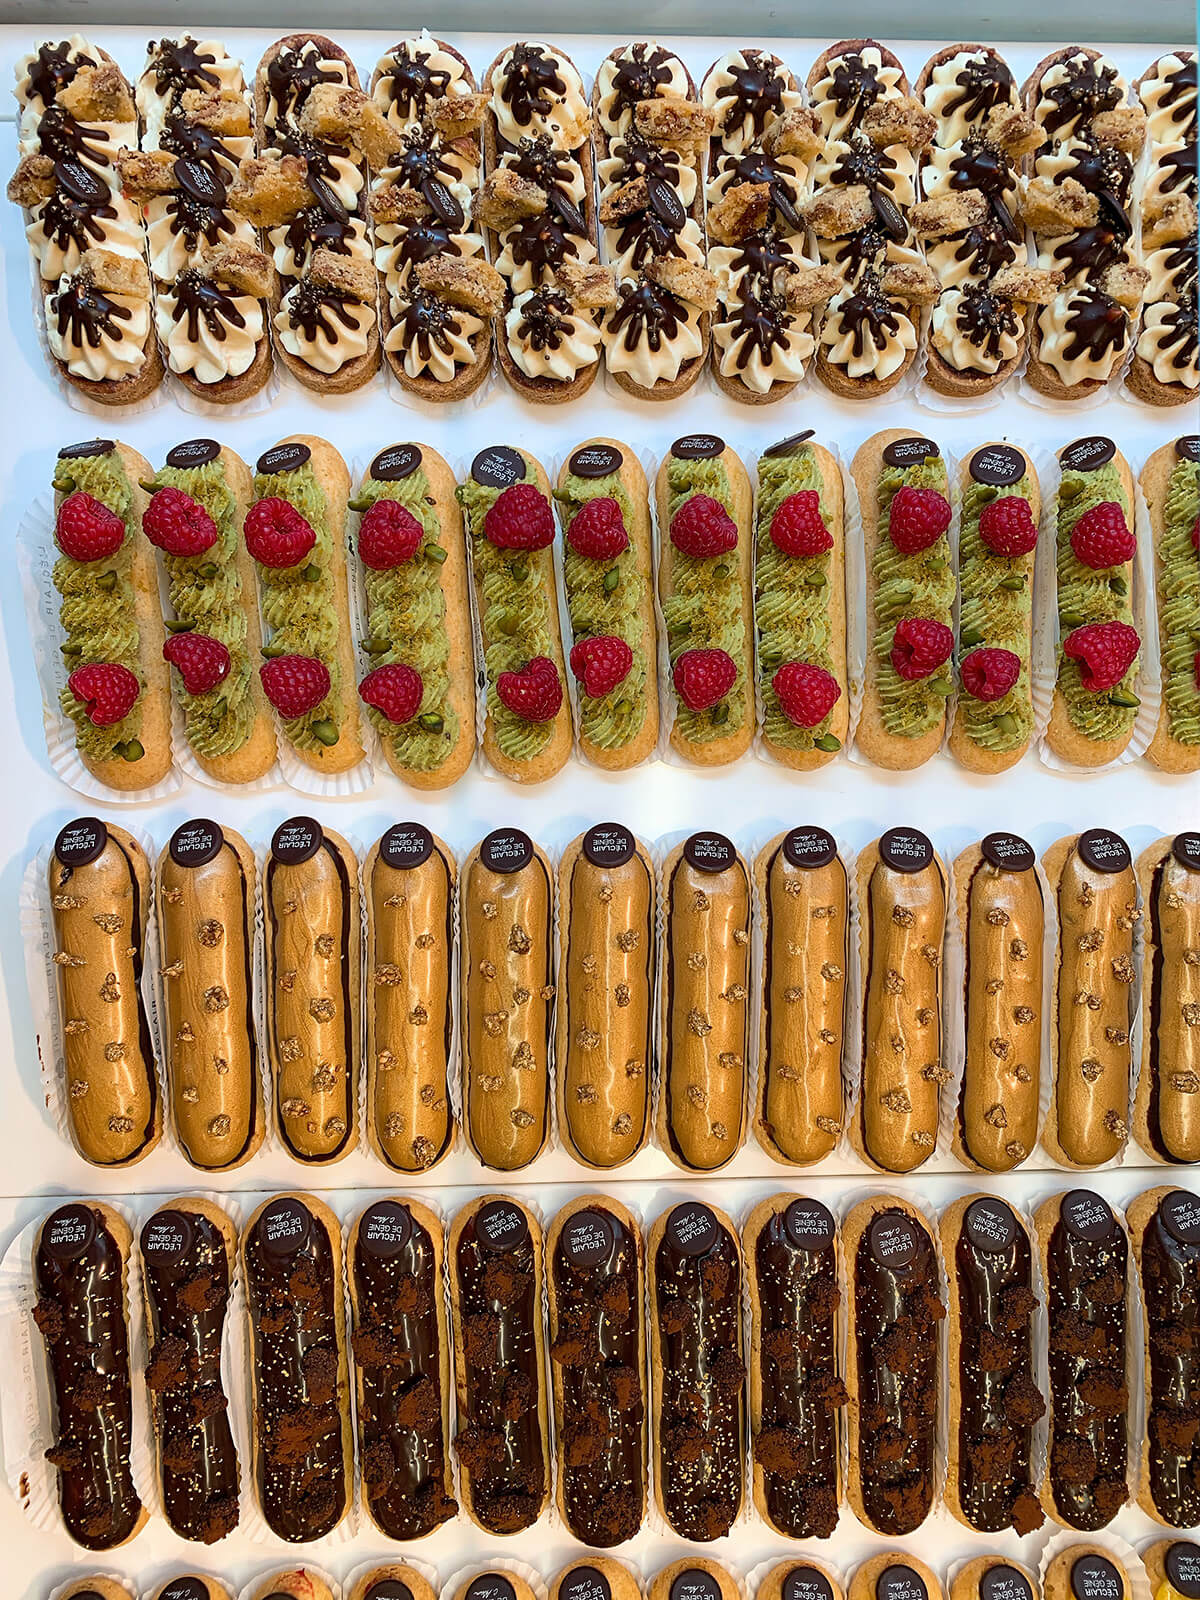 eclair-de-genie-top-pastry-shop-paris © Will Travel for Food